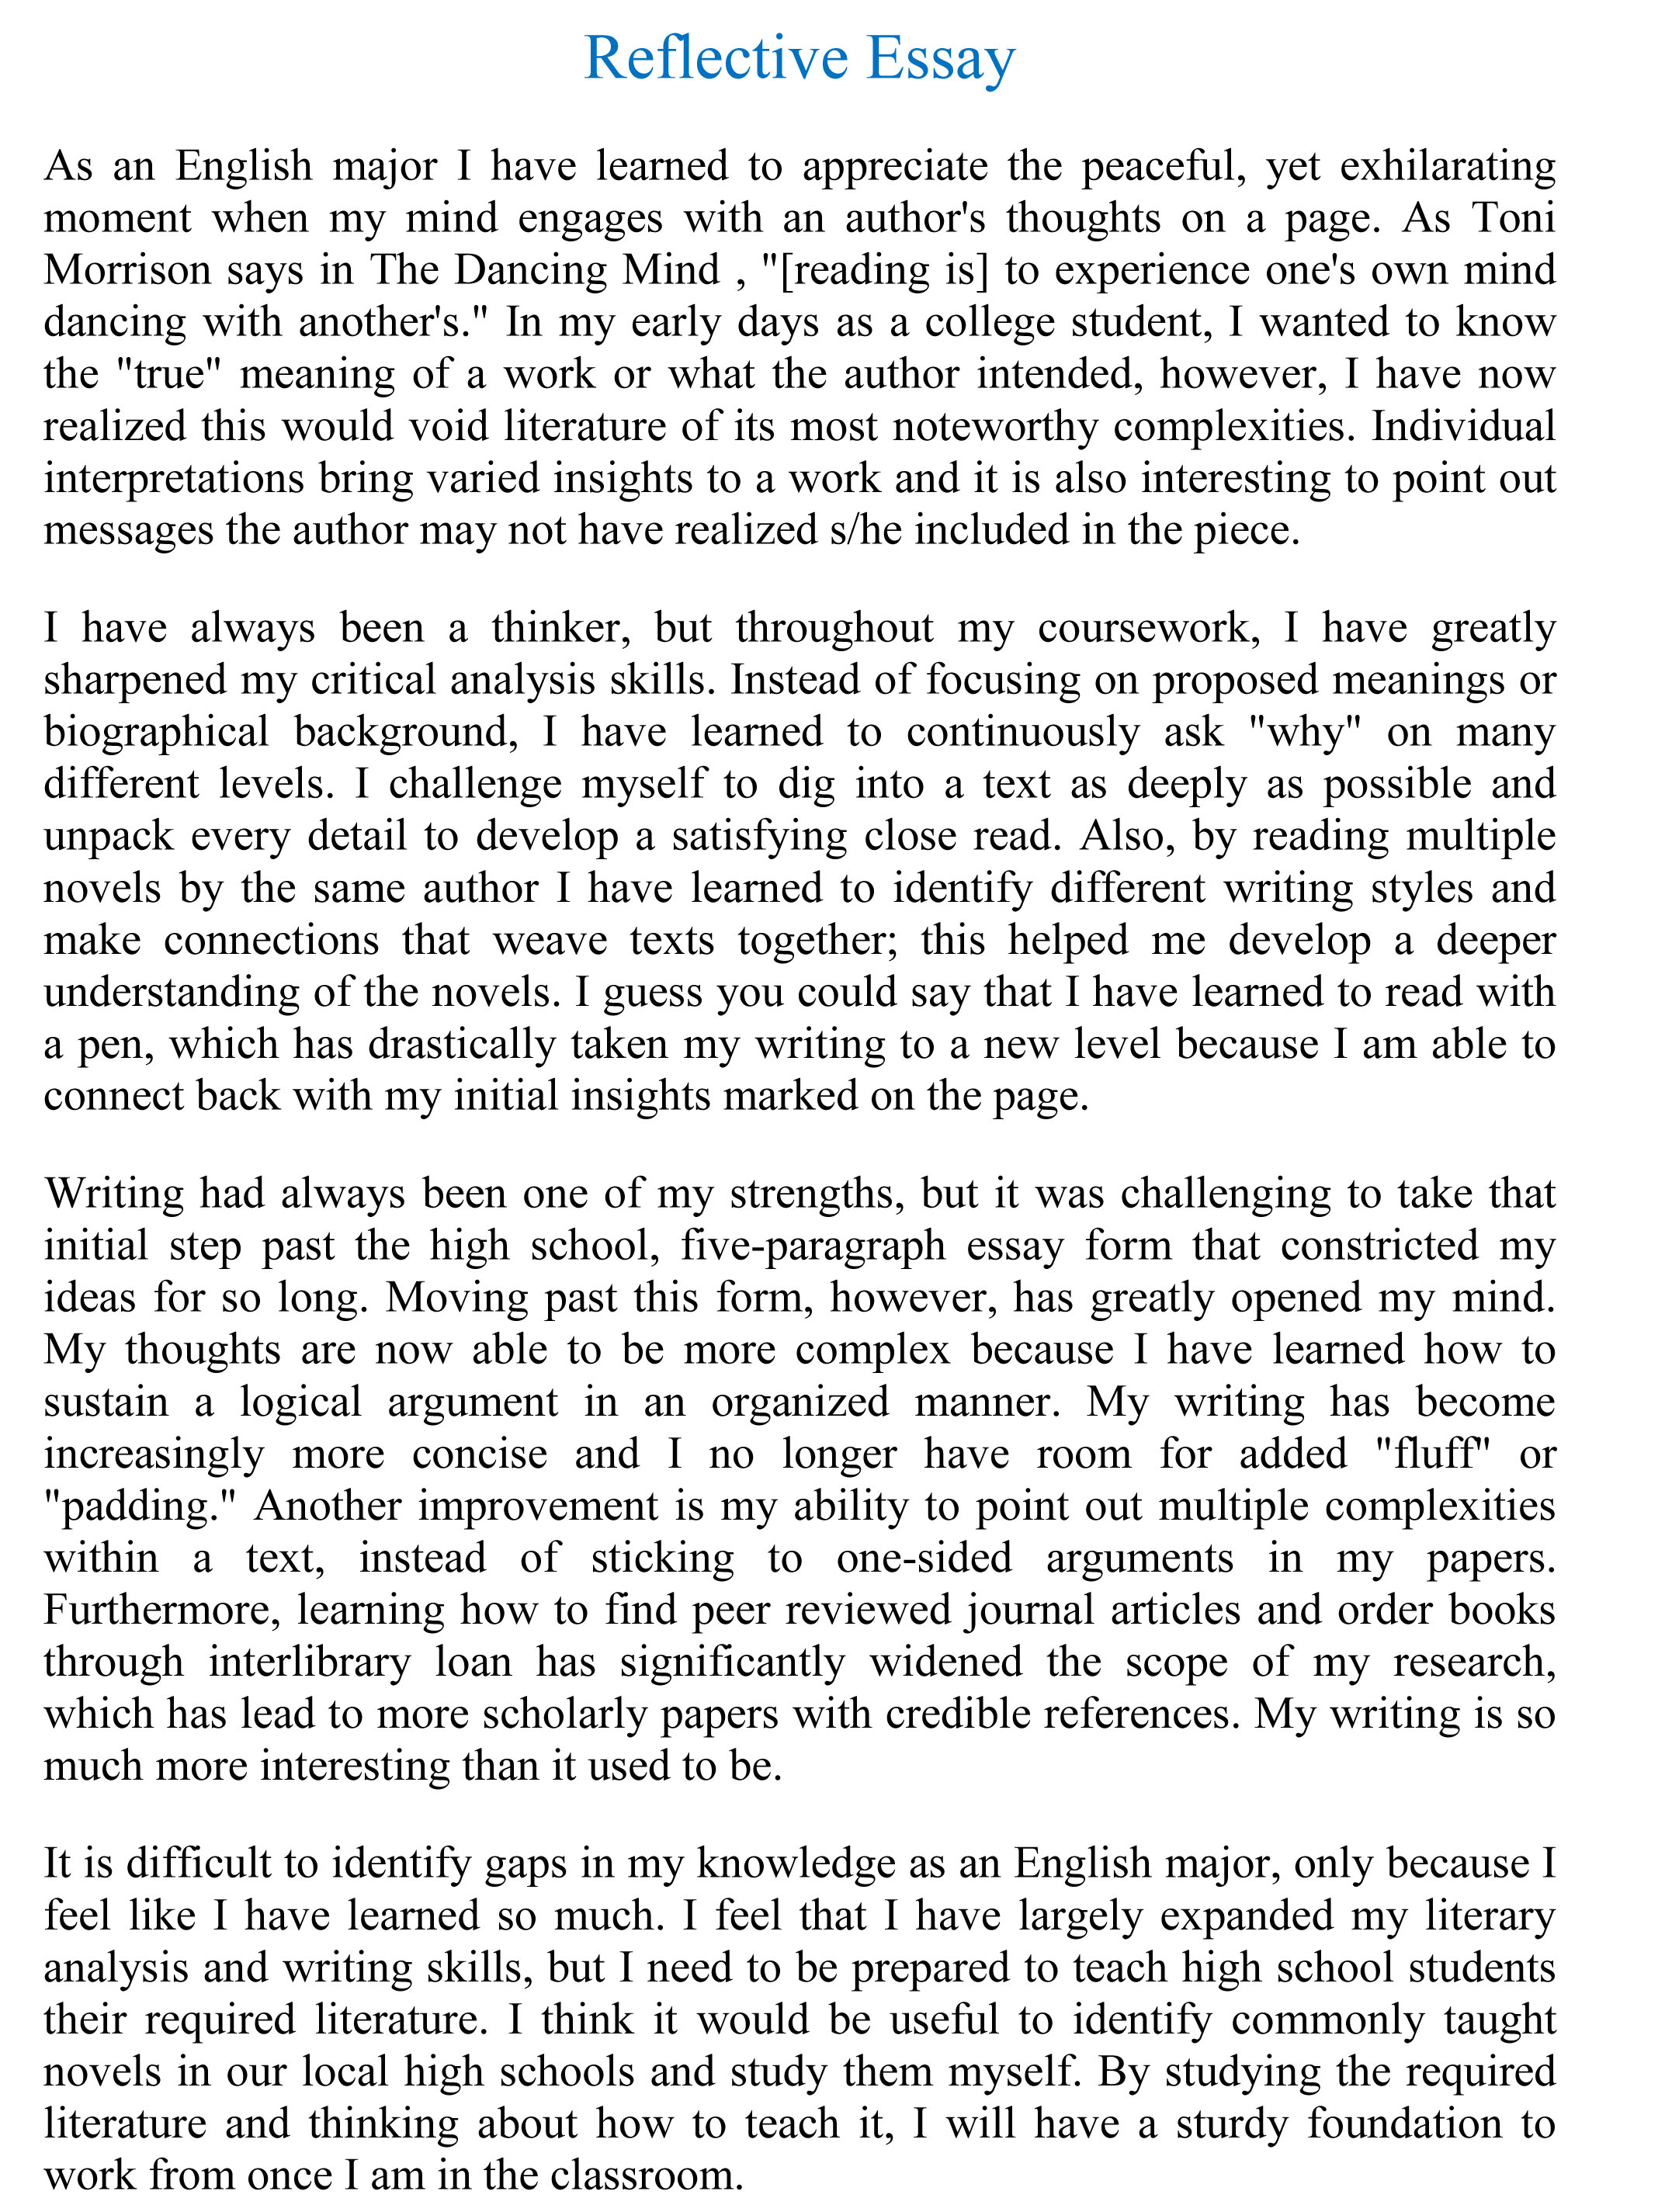 essays describing yourself essay describing love writing an essay  writing an essay about yourself how to write an essay about yourself how to write a